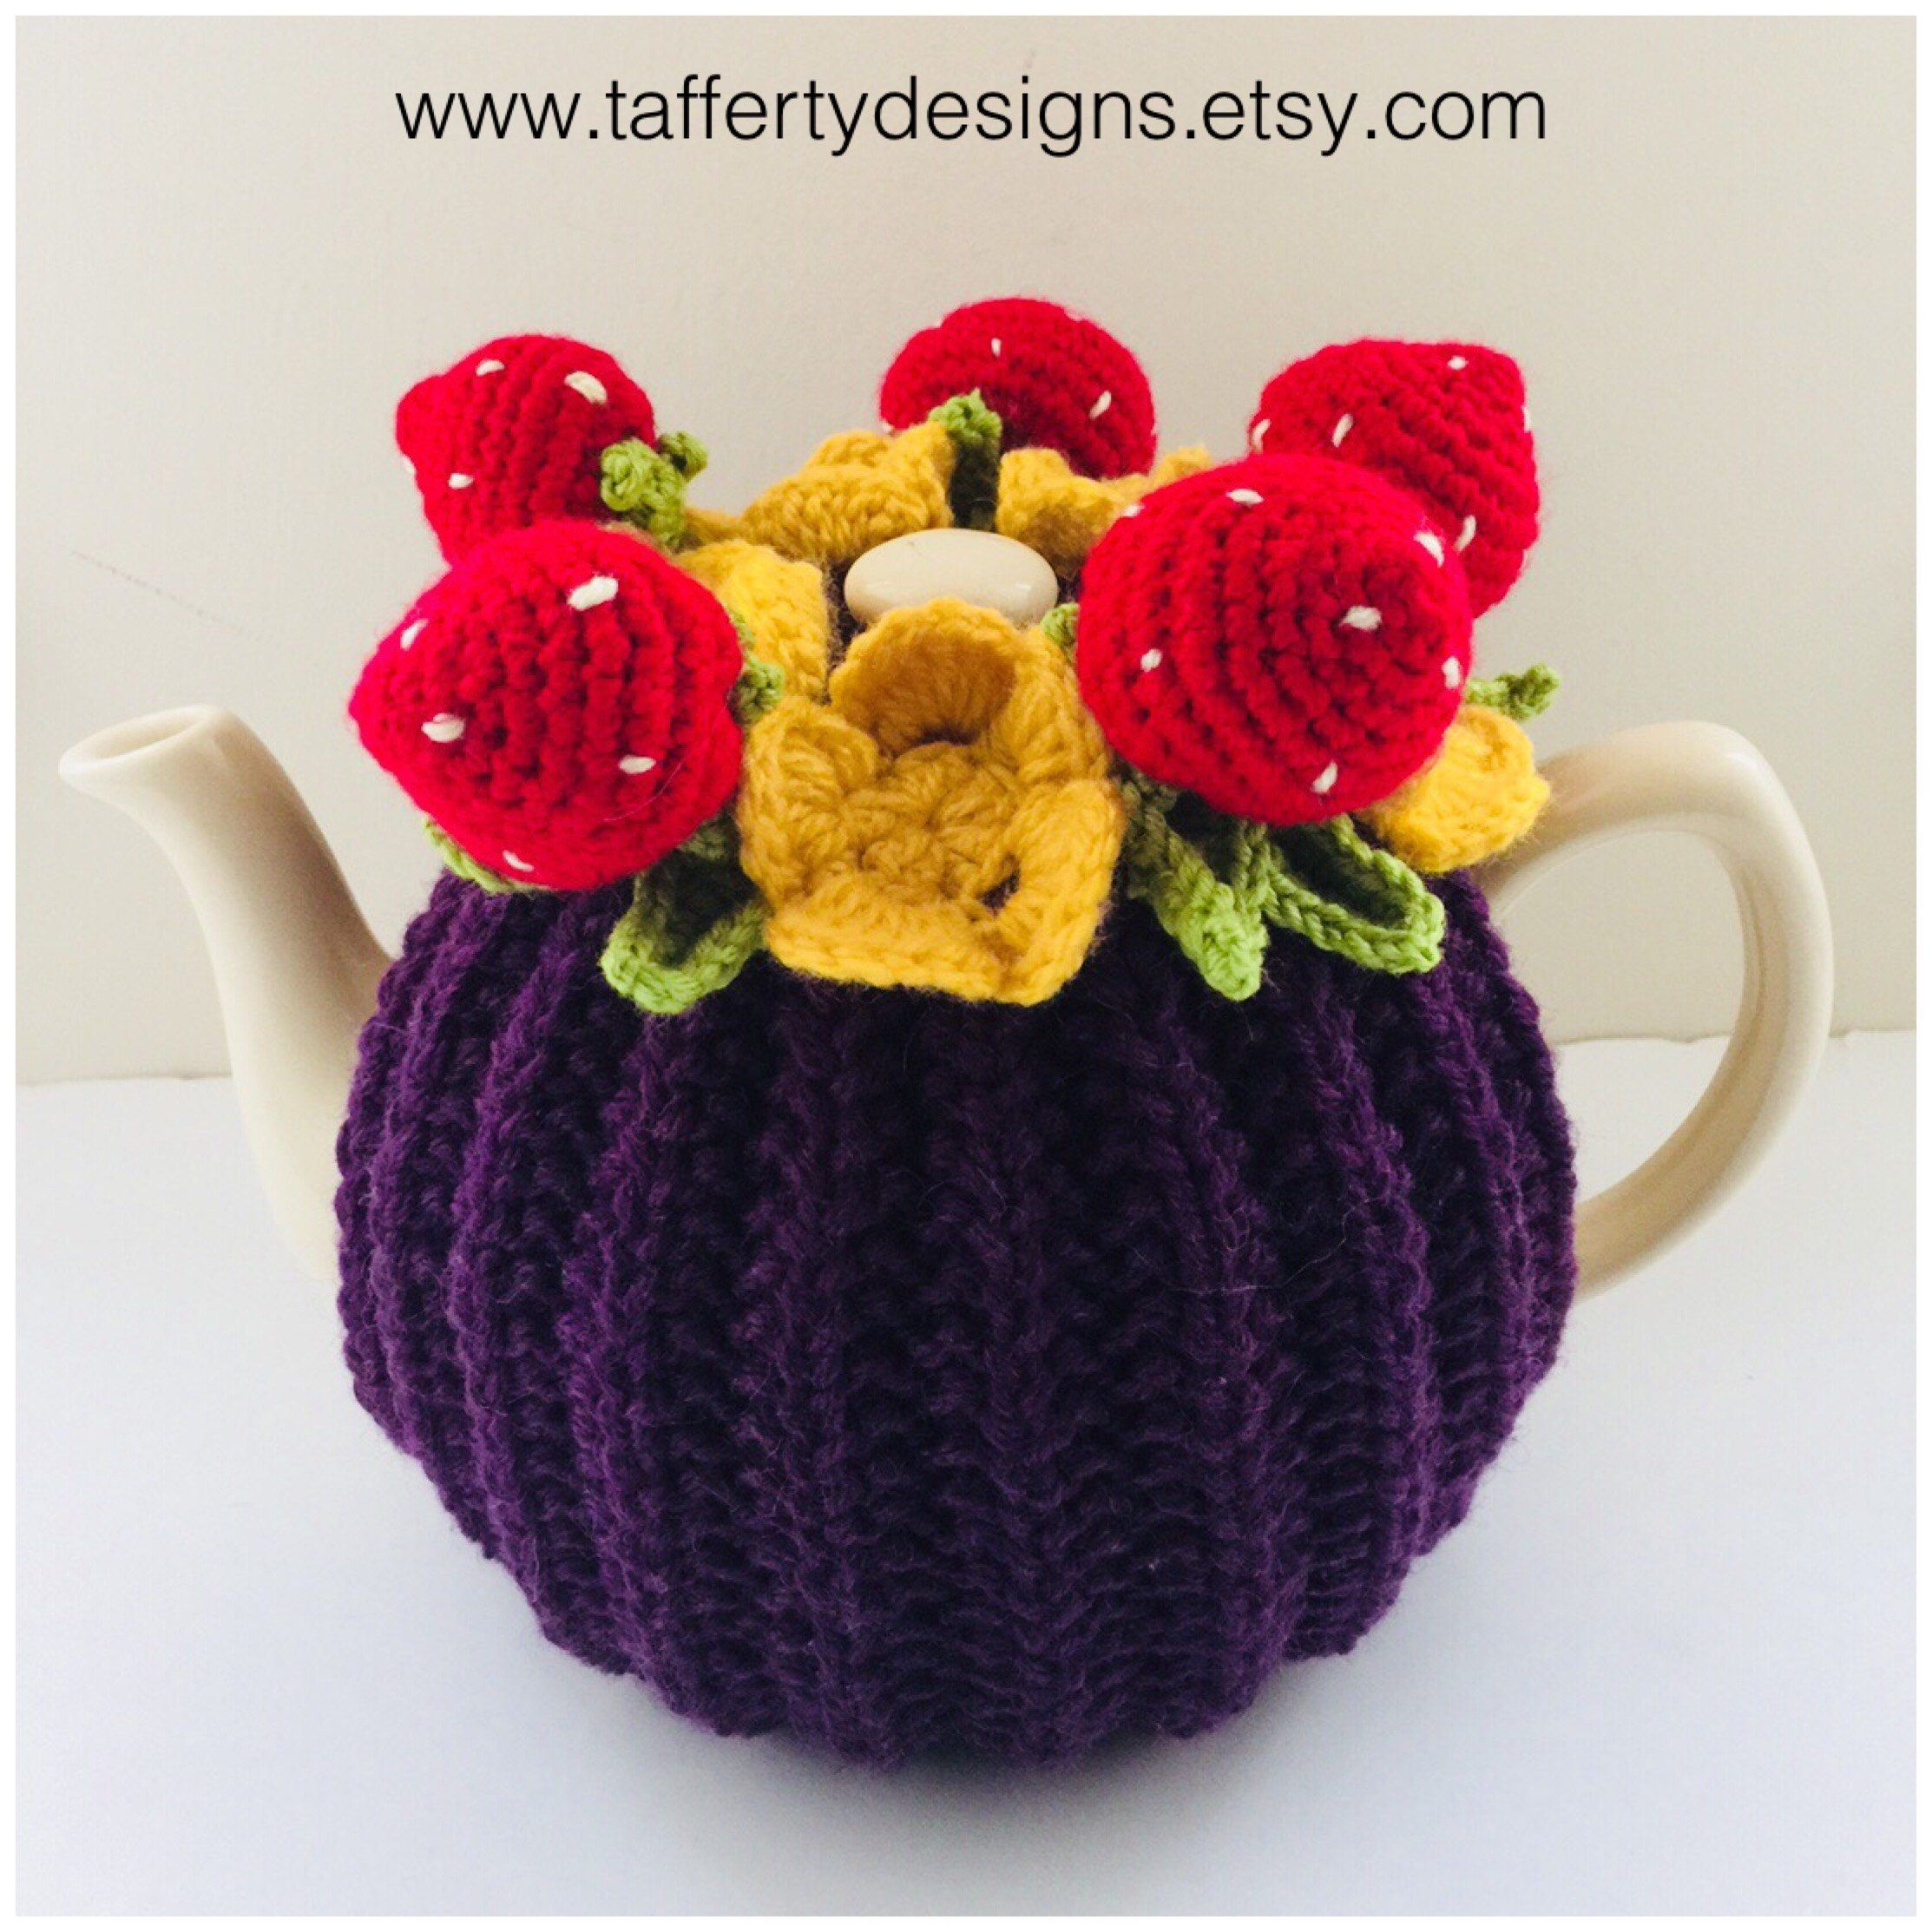 This stunning knitted \'Strawberry Patch\' #tea cosy is now listed in ...